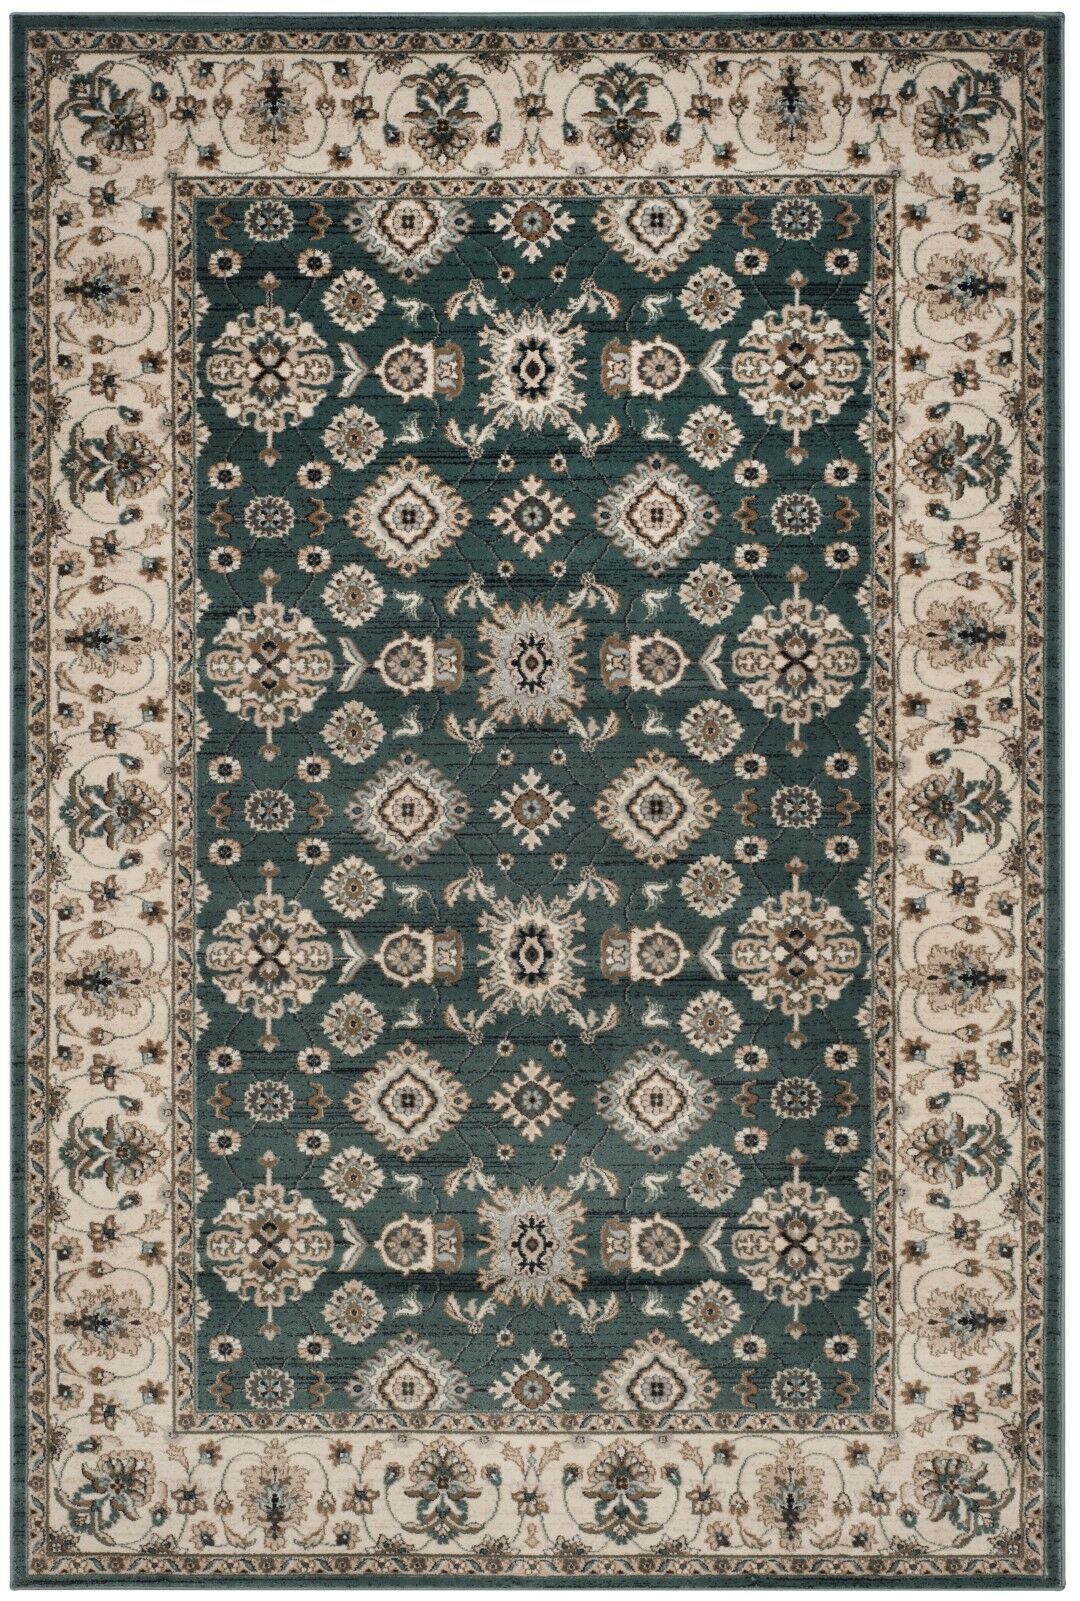 Briarcliff Teal/Cream Area Rug Rug Size: Rectangle 9' x 12'